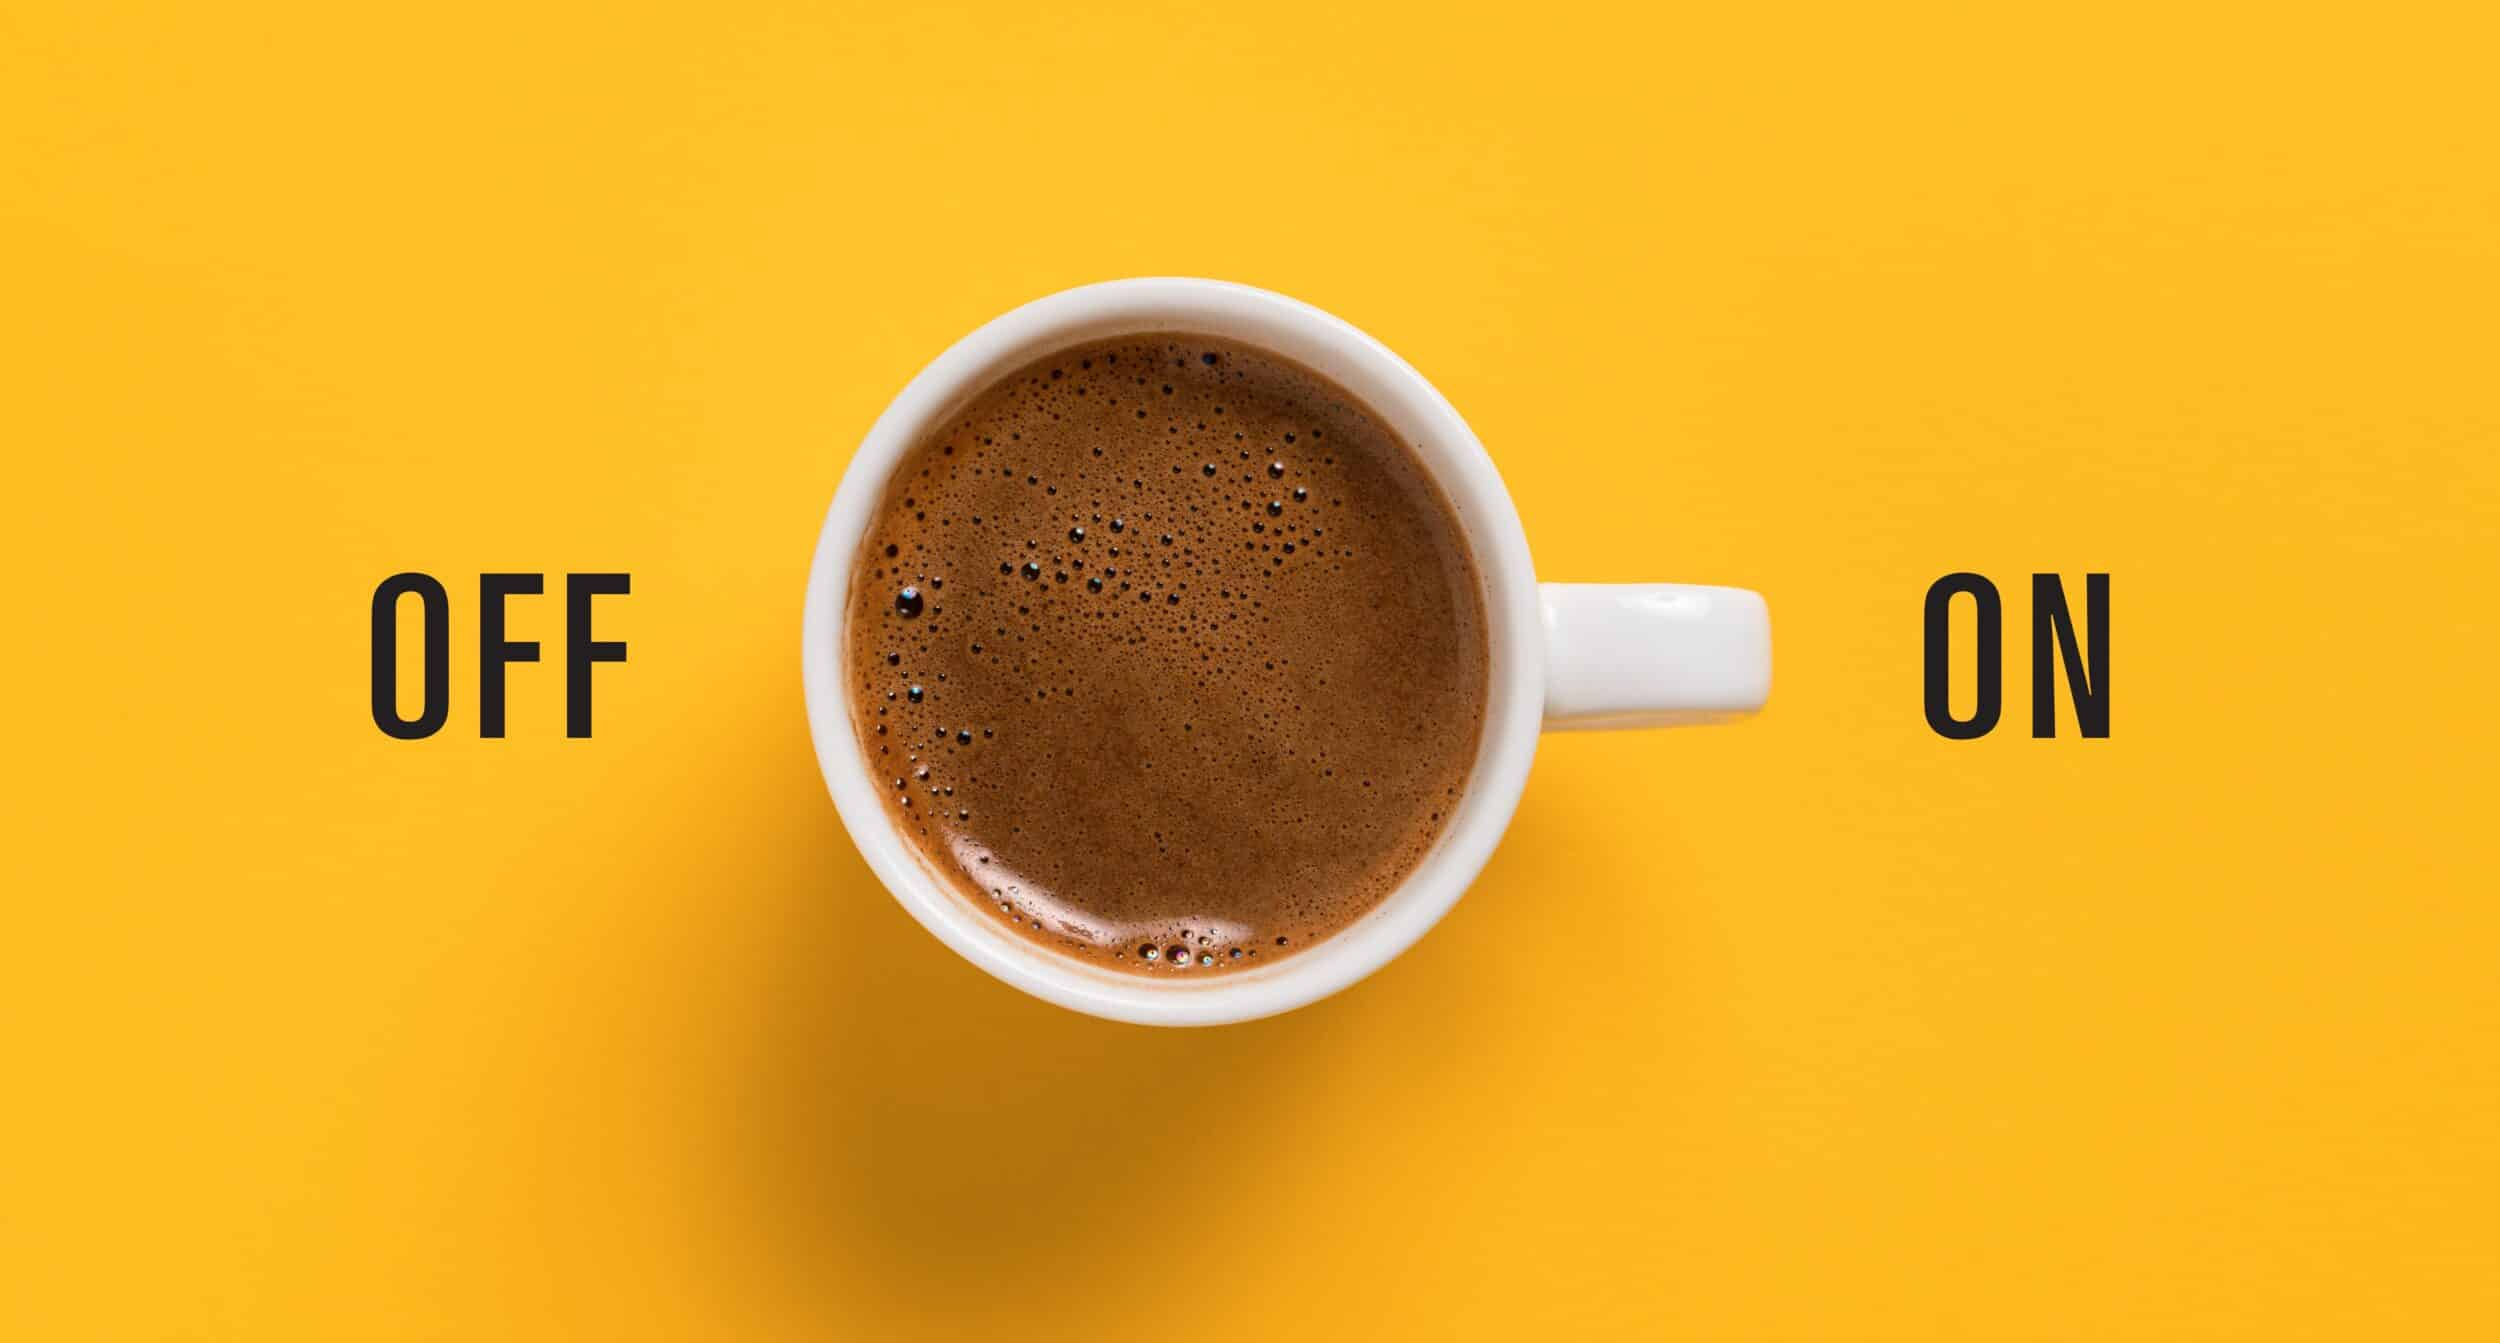 http://Cup%20of%20coffee%20on%20yellow%20background%20like%20switch%20button